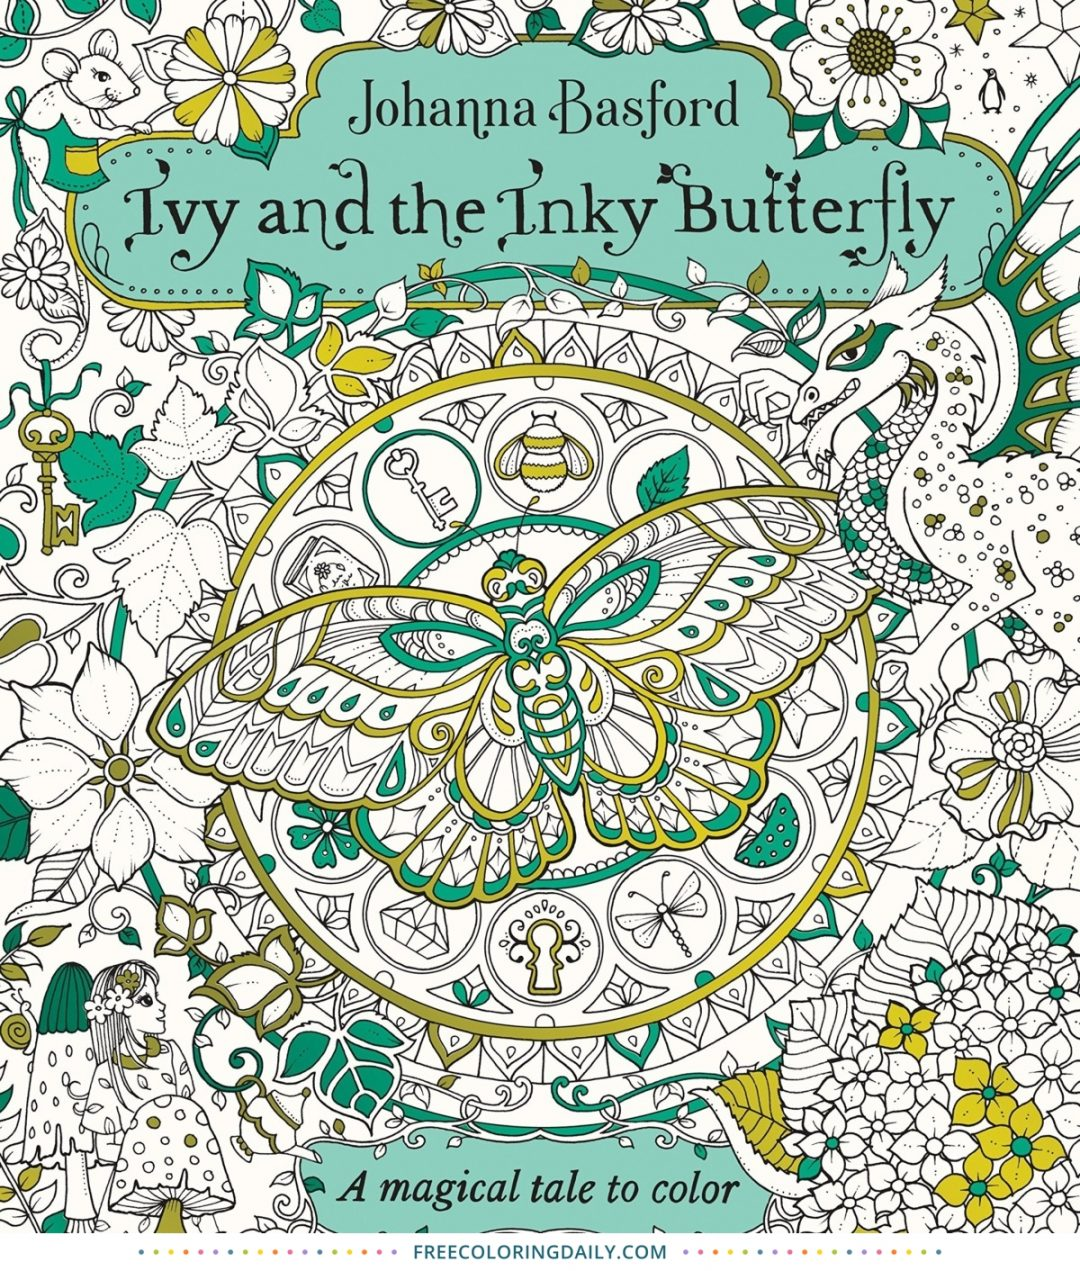 Ivy and the Inky Butterfly Coloring